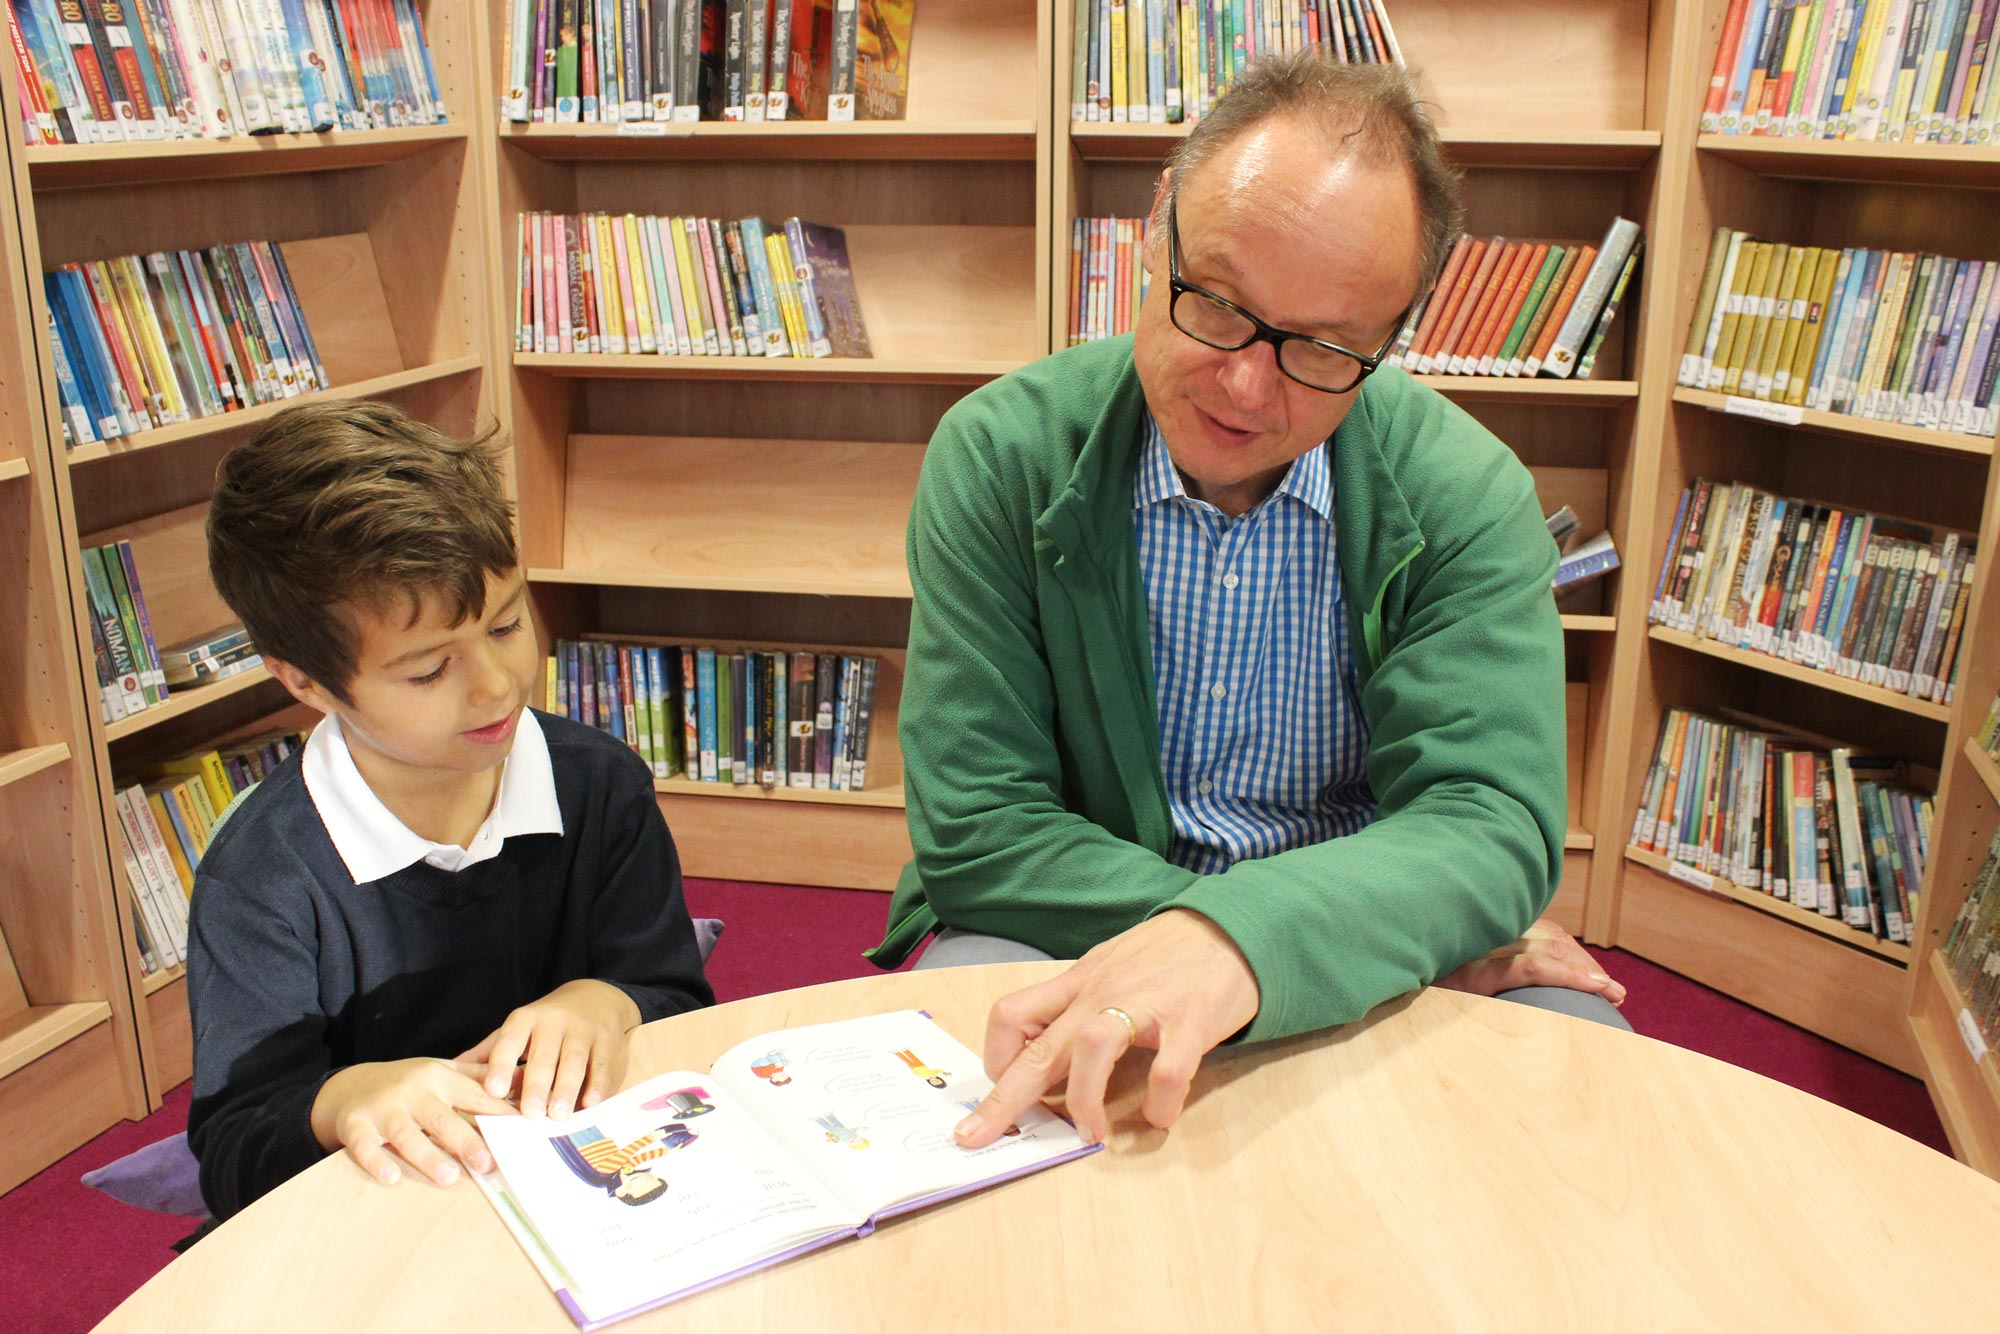 Parent helps pupil with reading